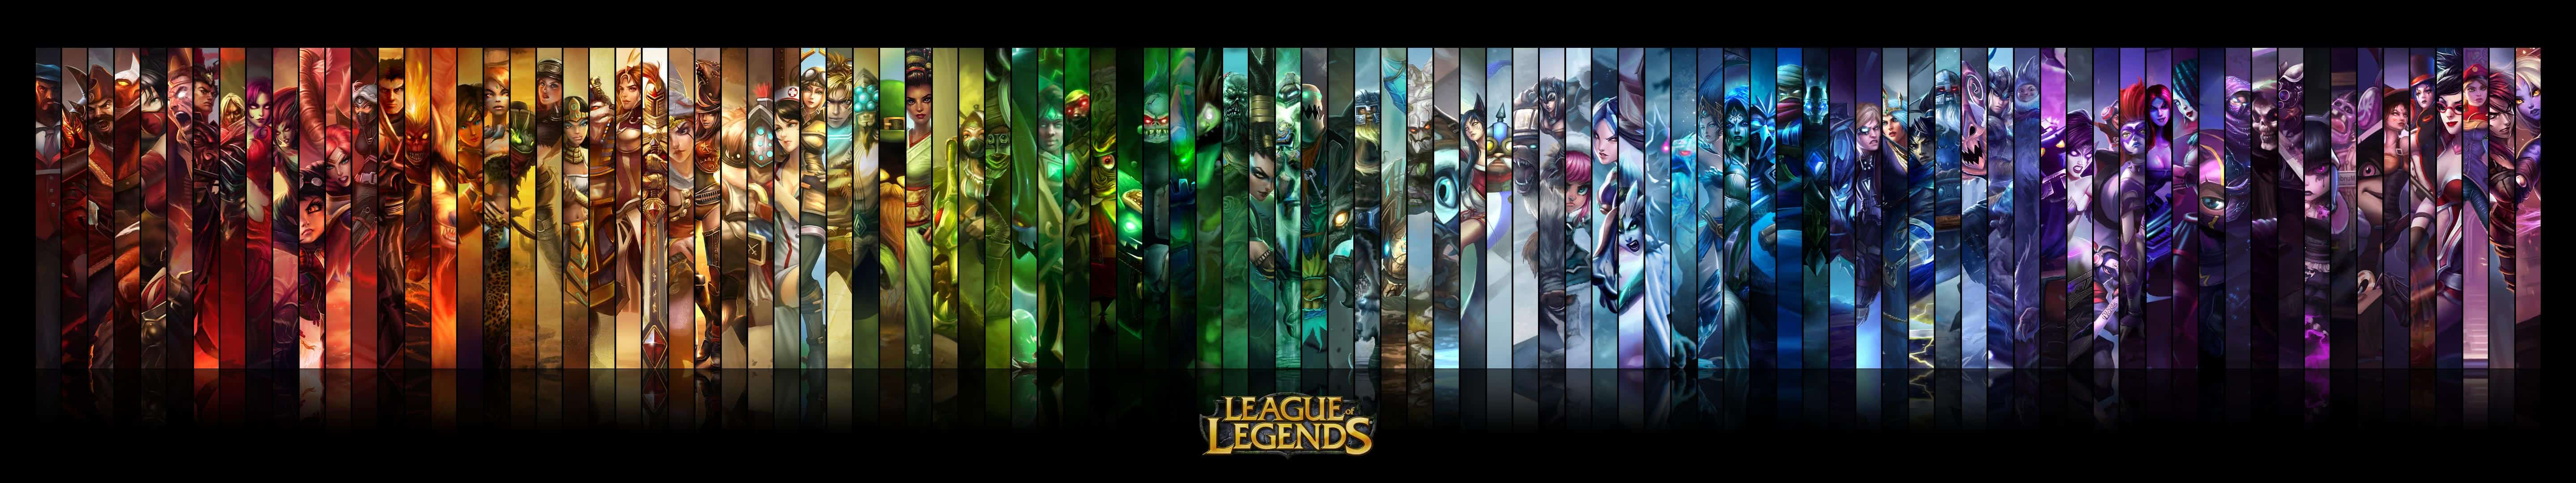 League Of Legends Champions Triple Monitor Wallpaper Pixelz